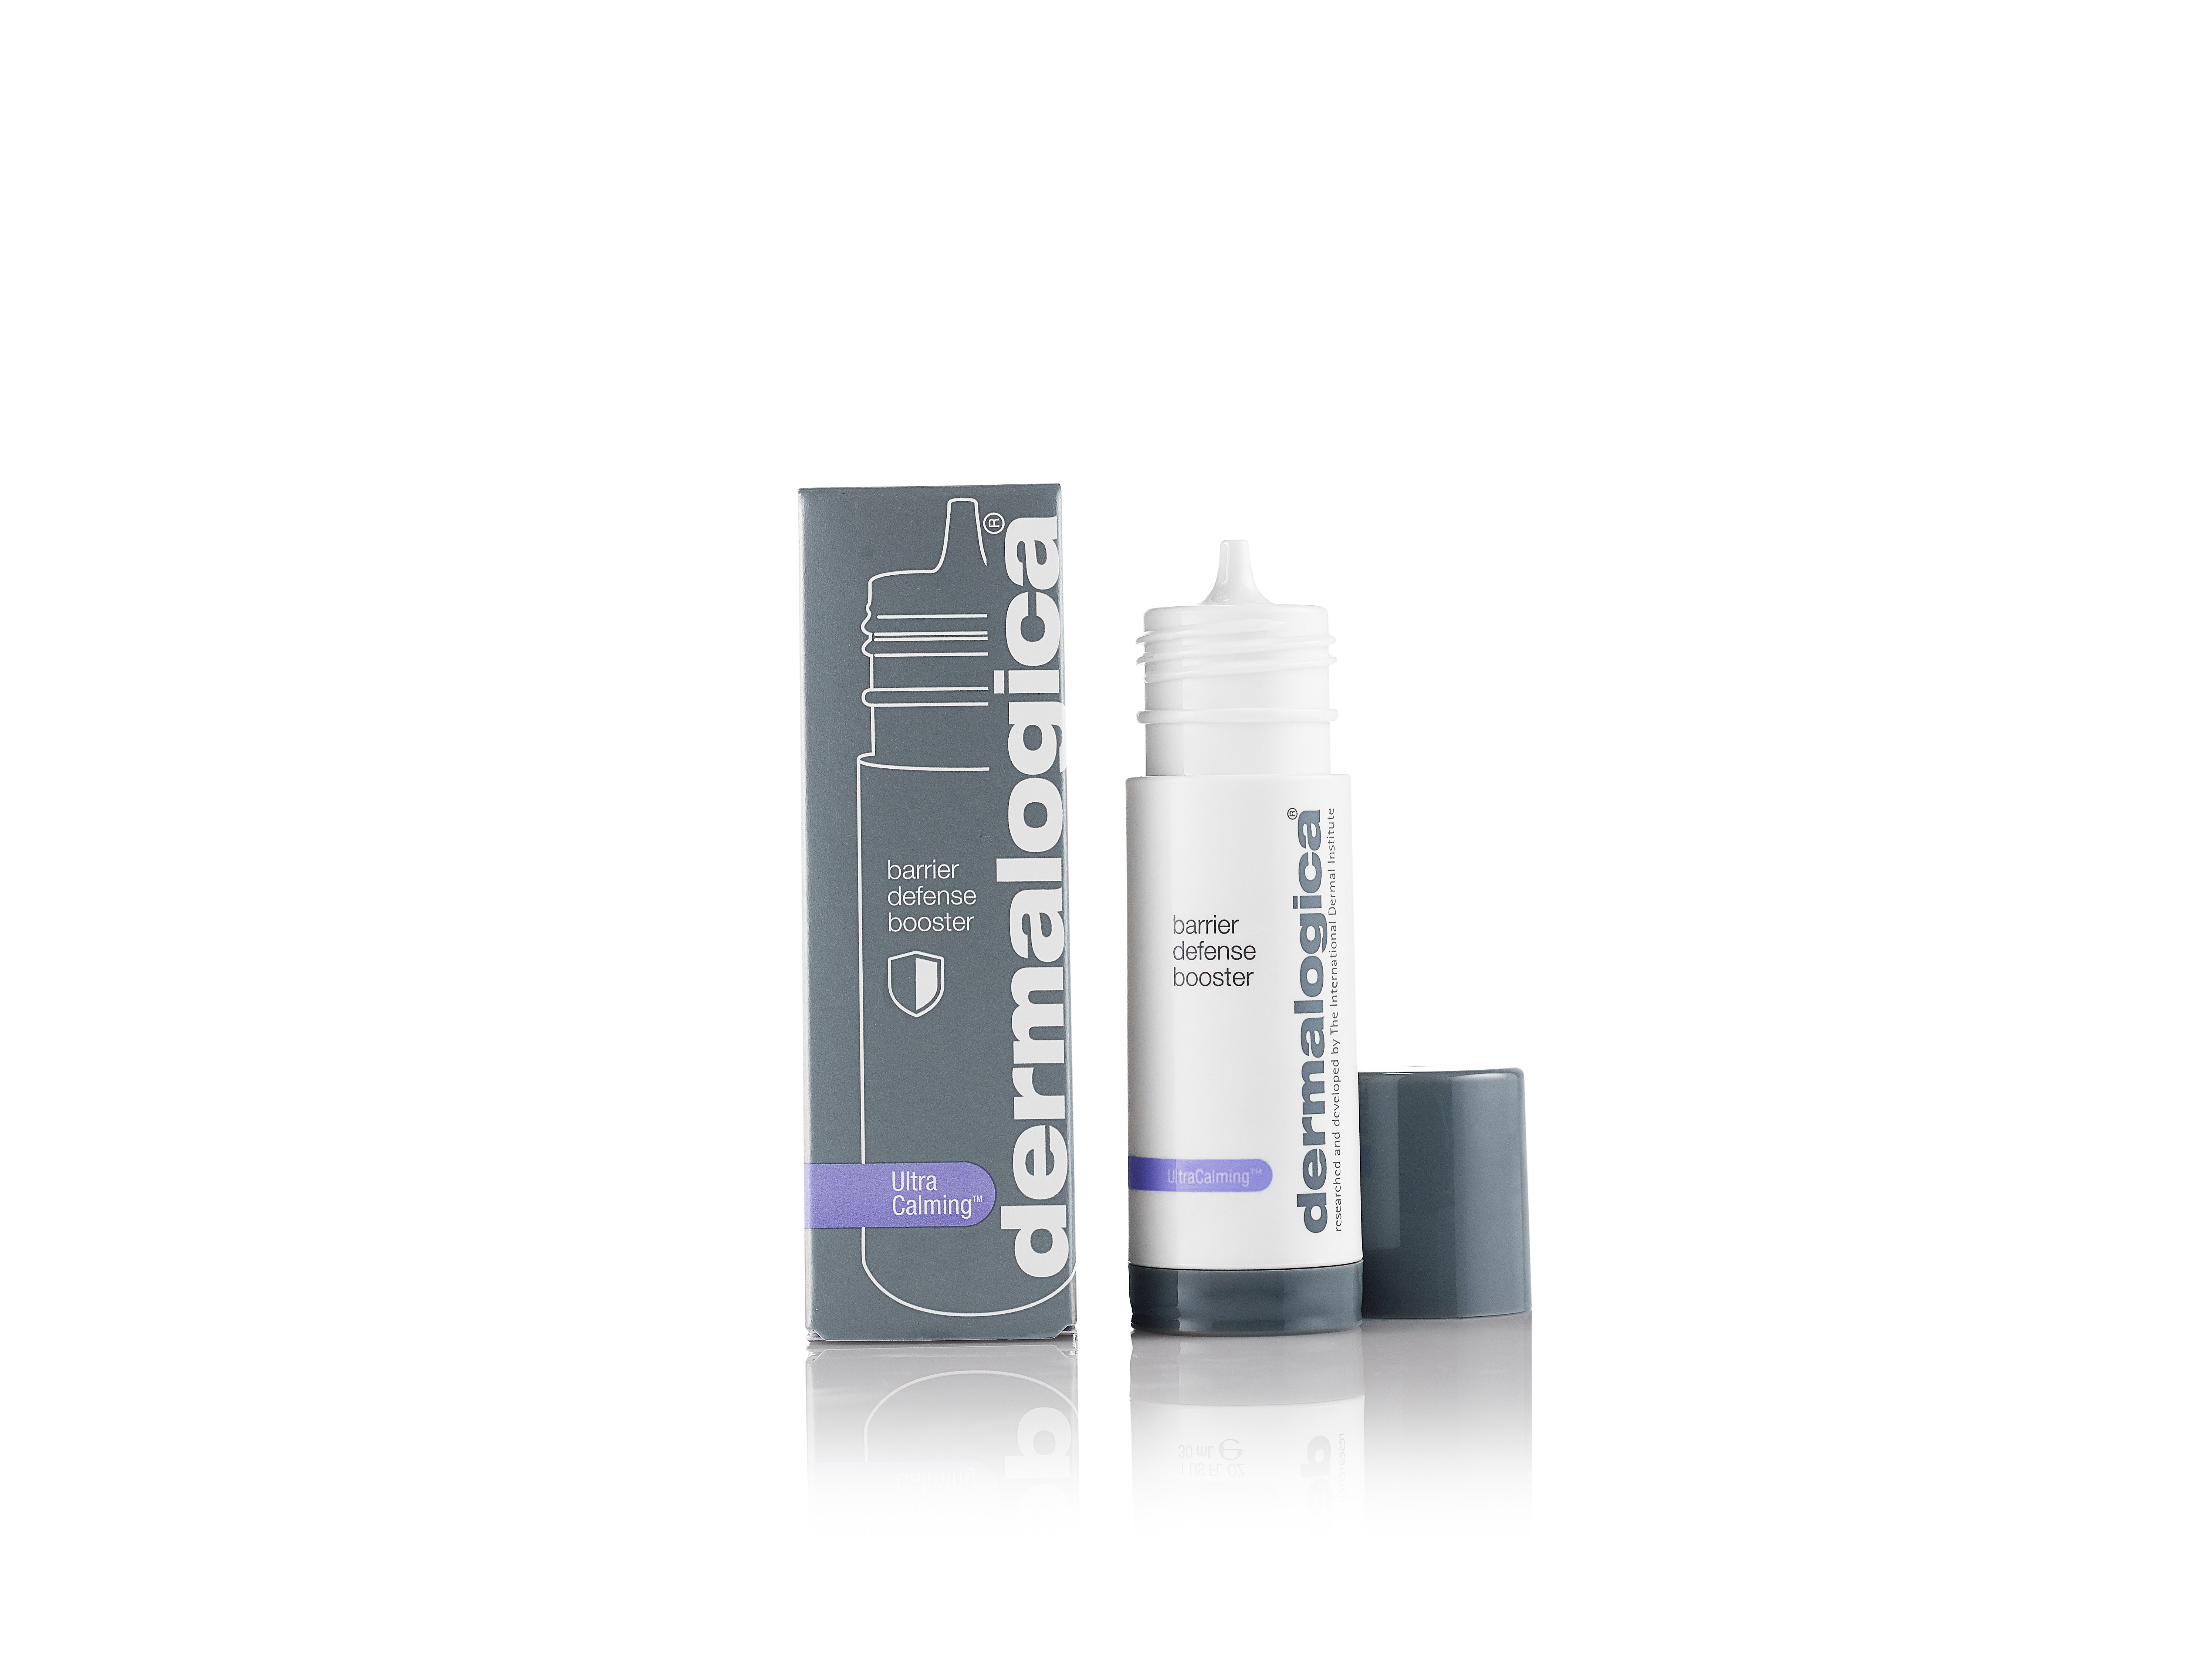 Sensitive Skin And The New Ultracalming Duo Prodermal